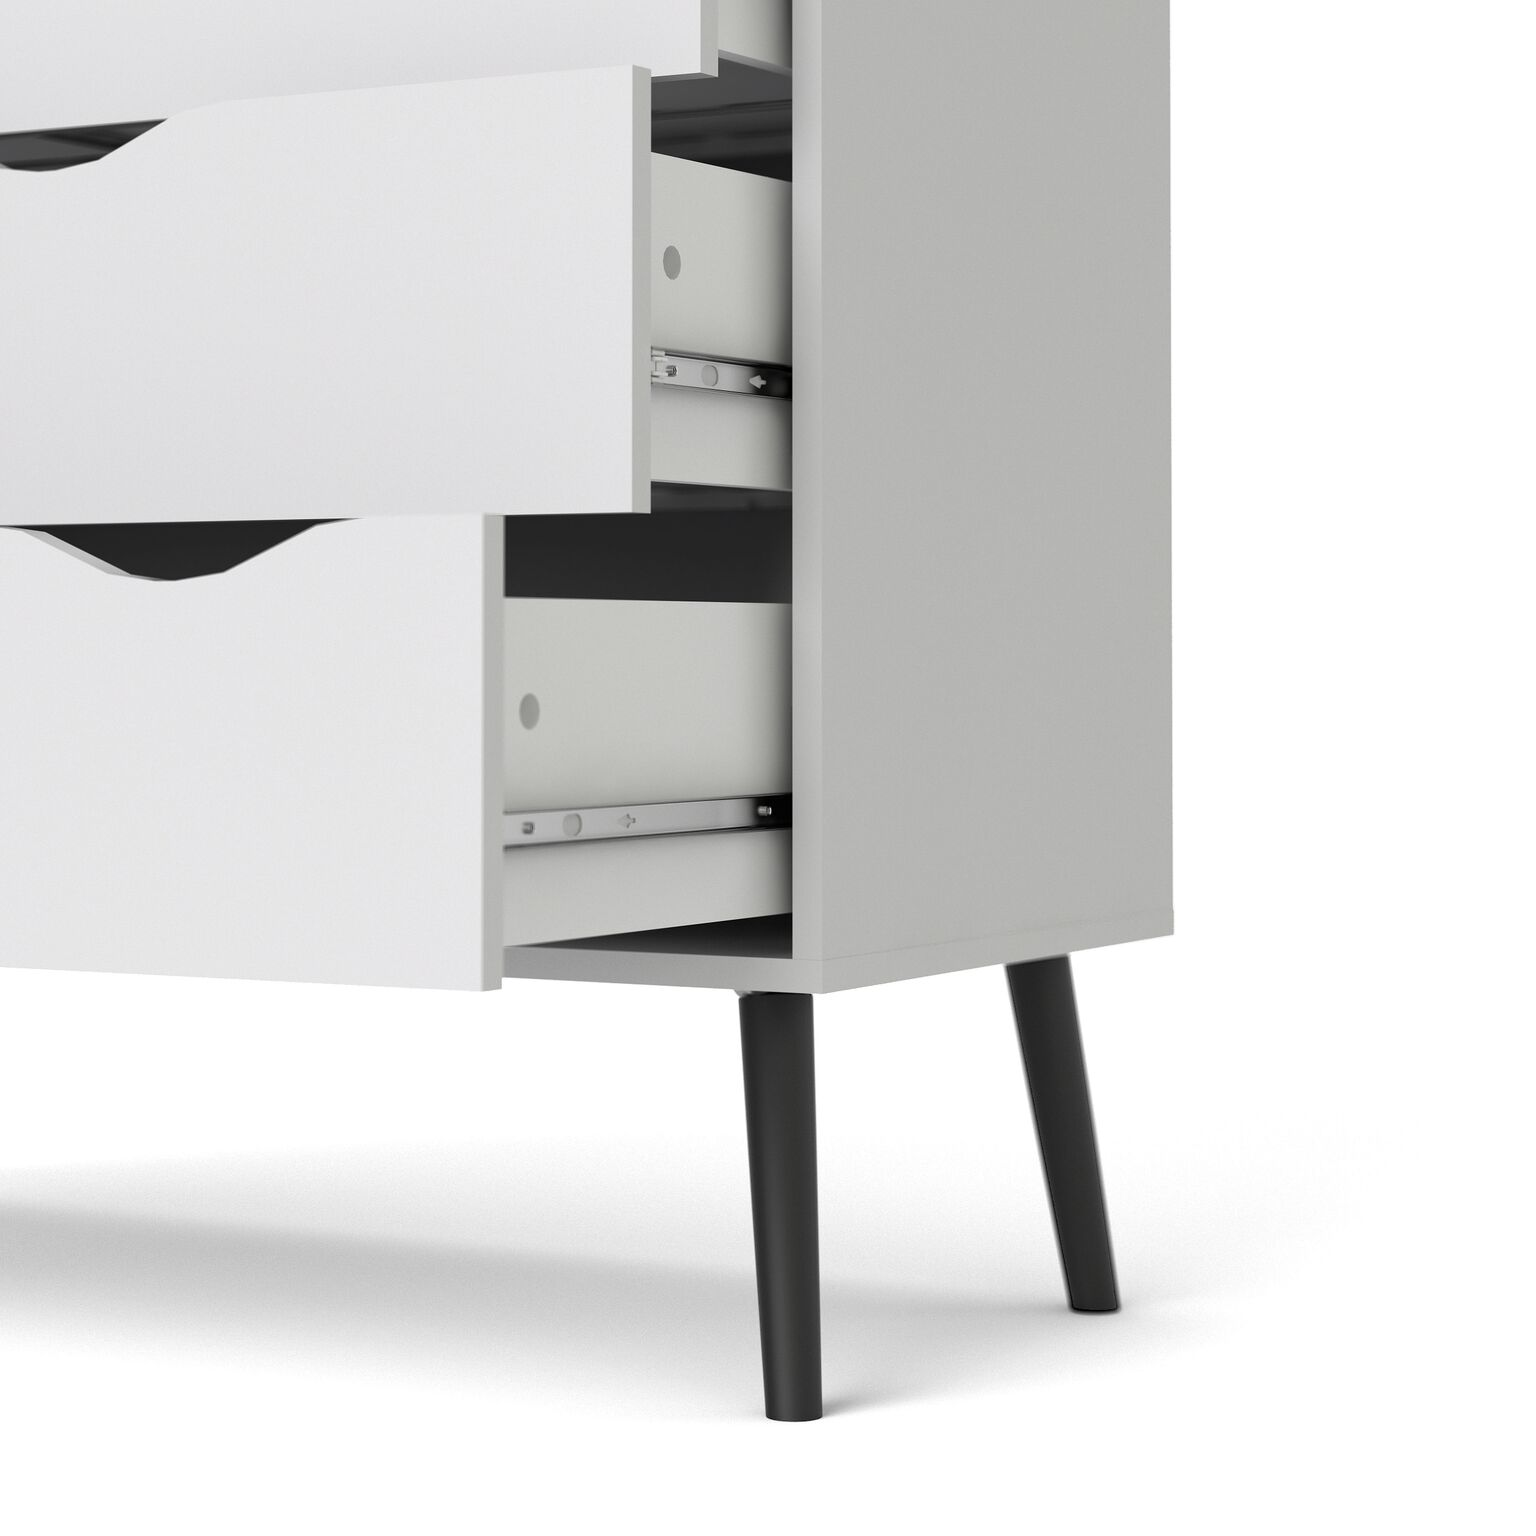 kommode napoli sideboard anrichte schrank highboard schwarz wei m bel wohnen schr nke vitrinen. Black Bedroom Furniture Sets. Home Design Ideas